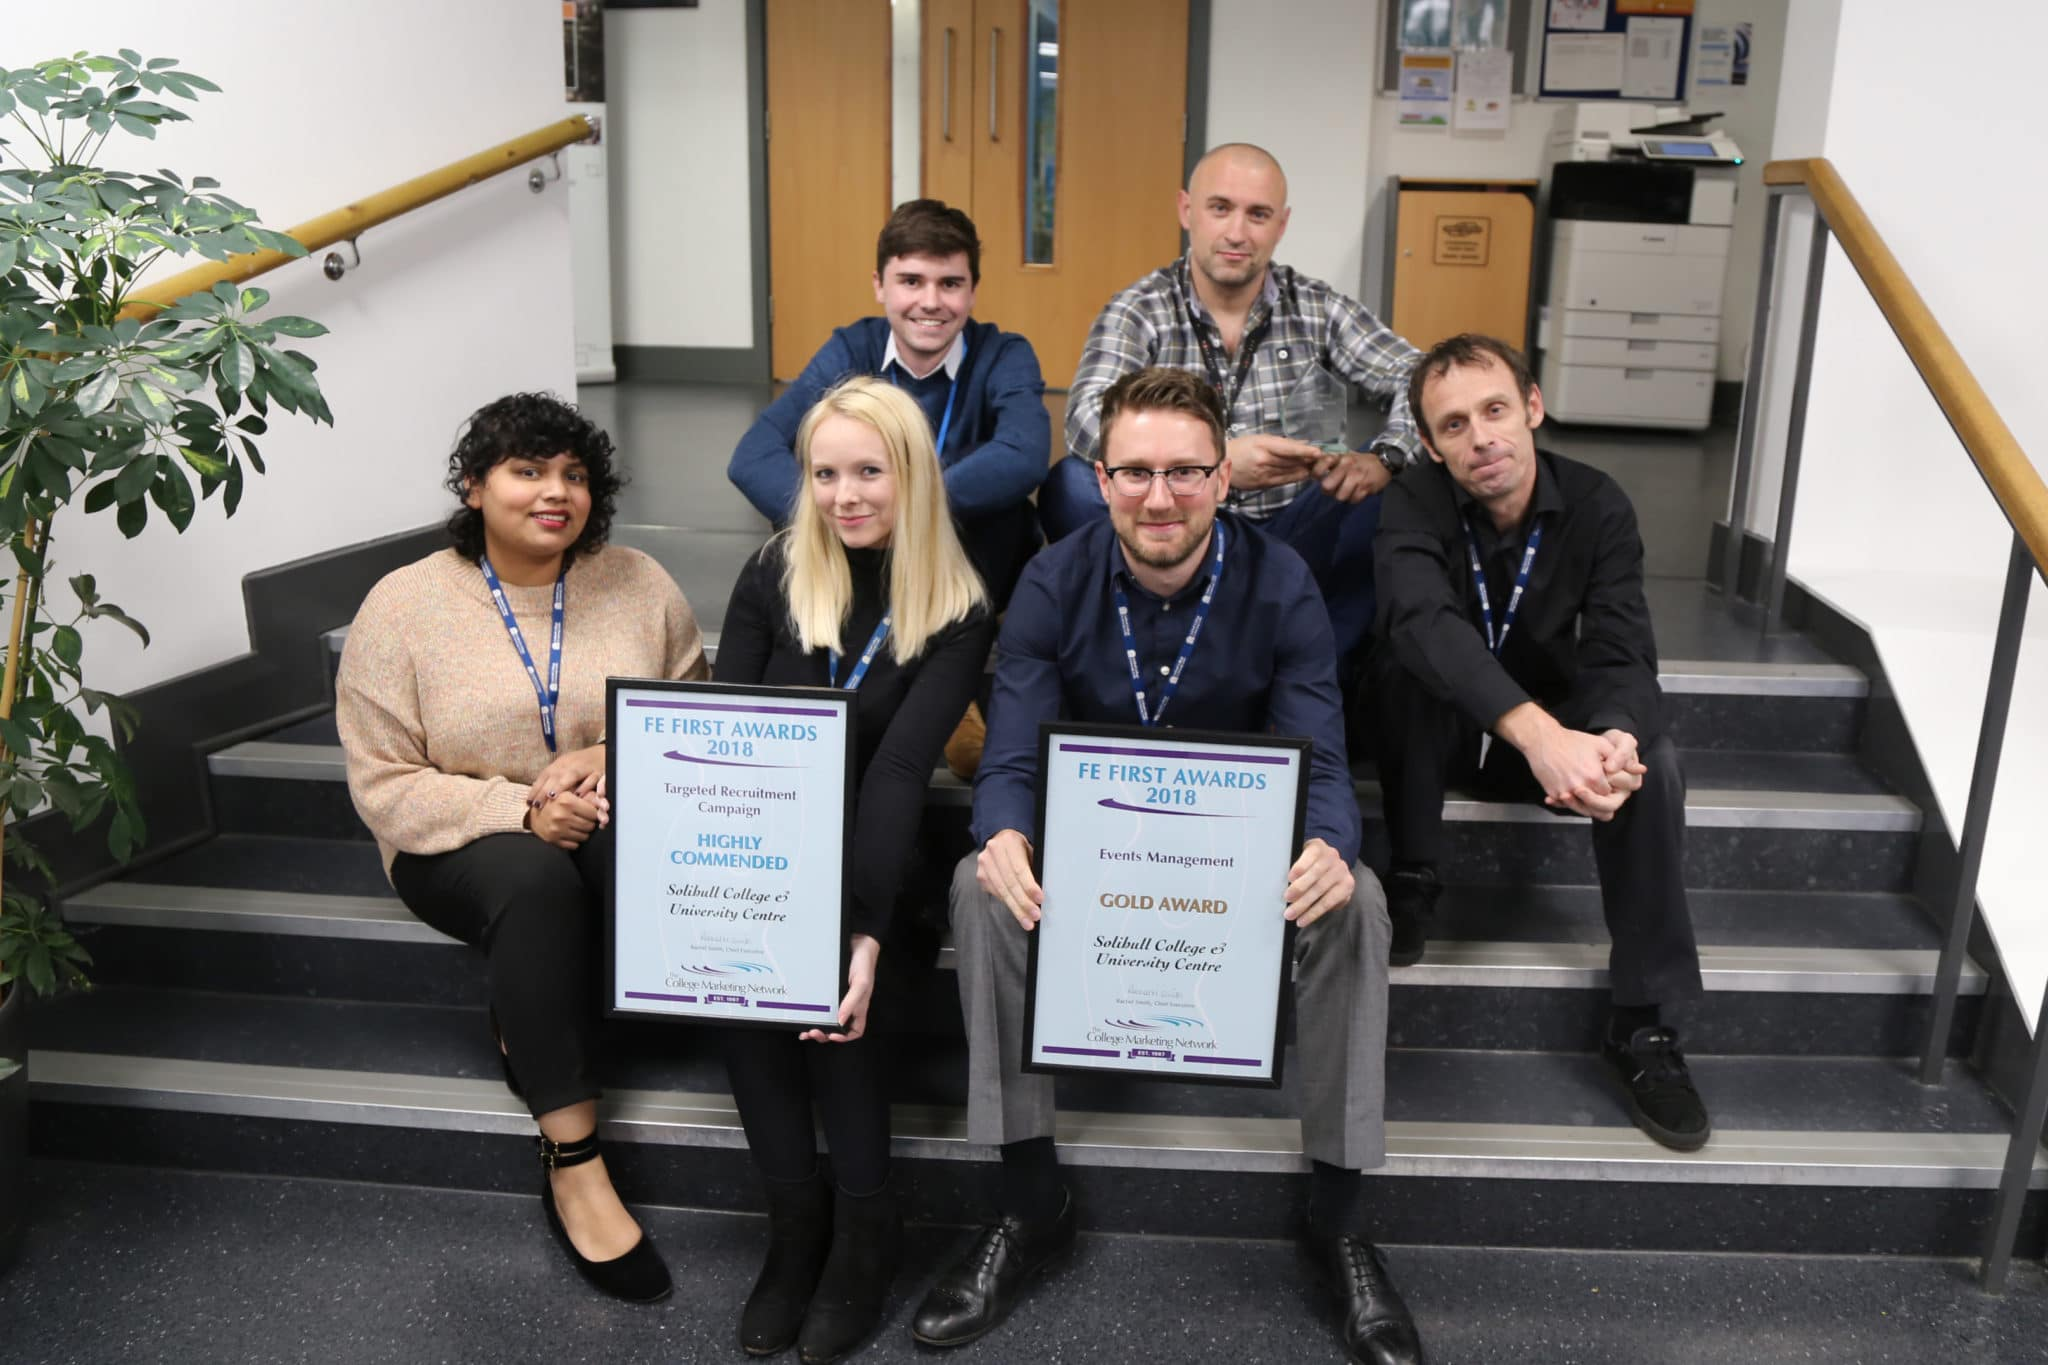 The Marketing Team & Graphic Design Team at Solihull College & University Centre